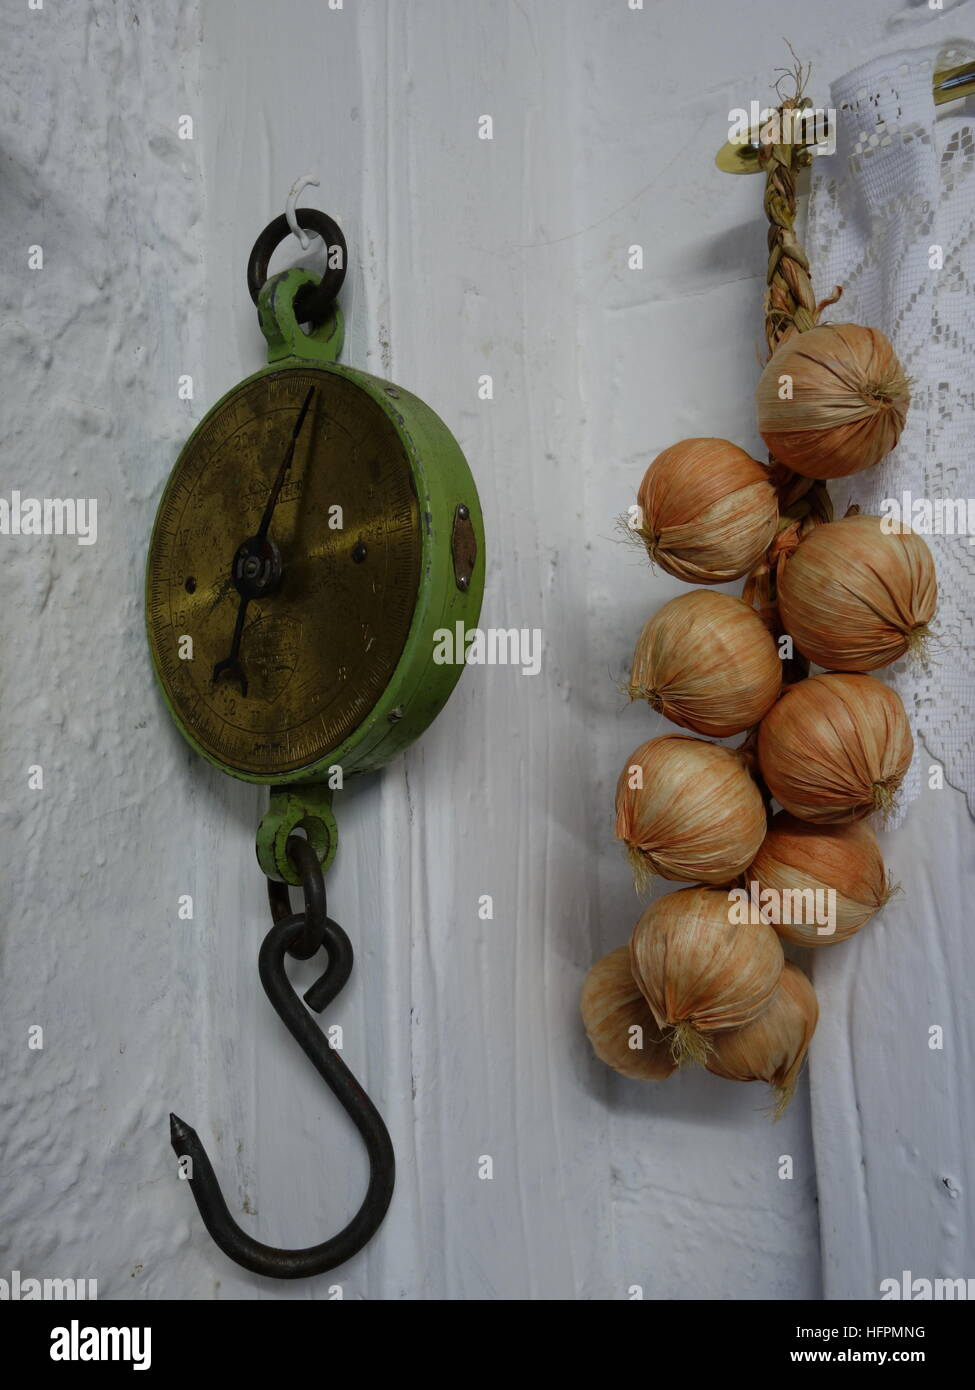 Vintage Hanging Scales and a string of onions - Stock Image